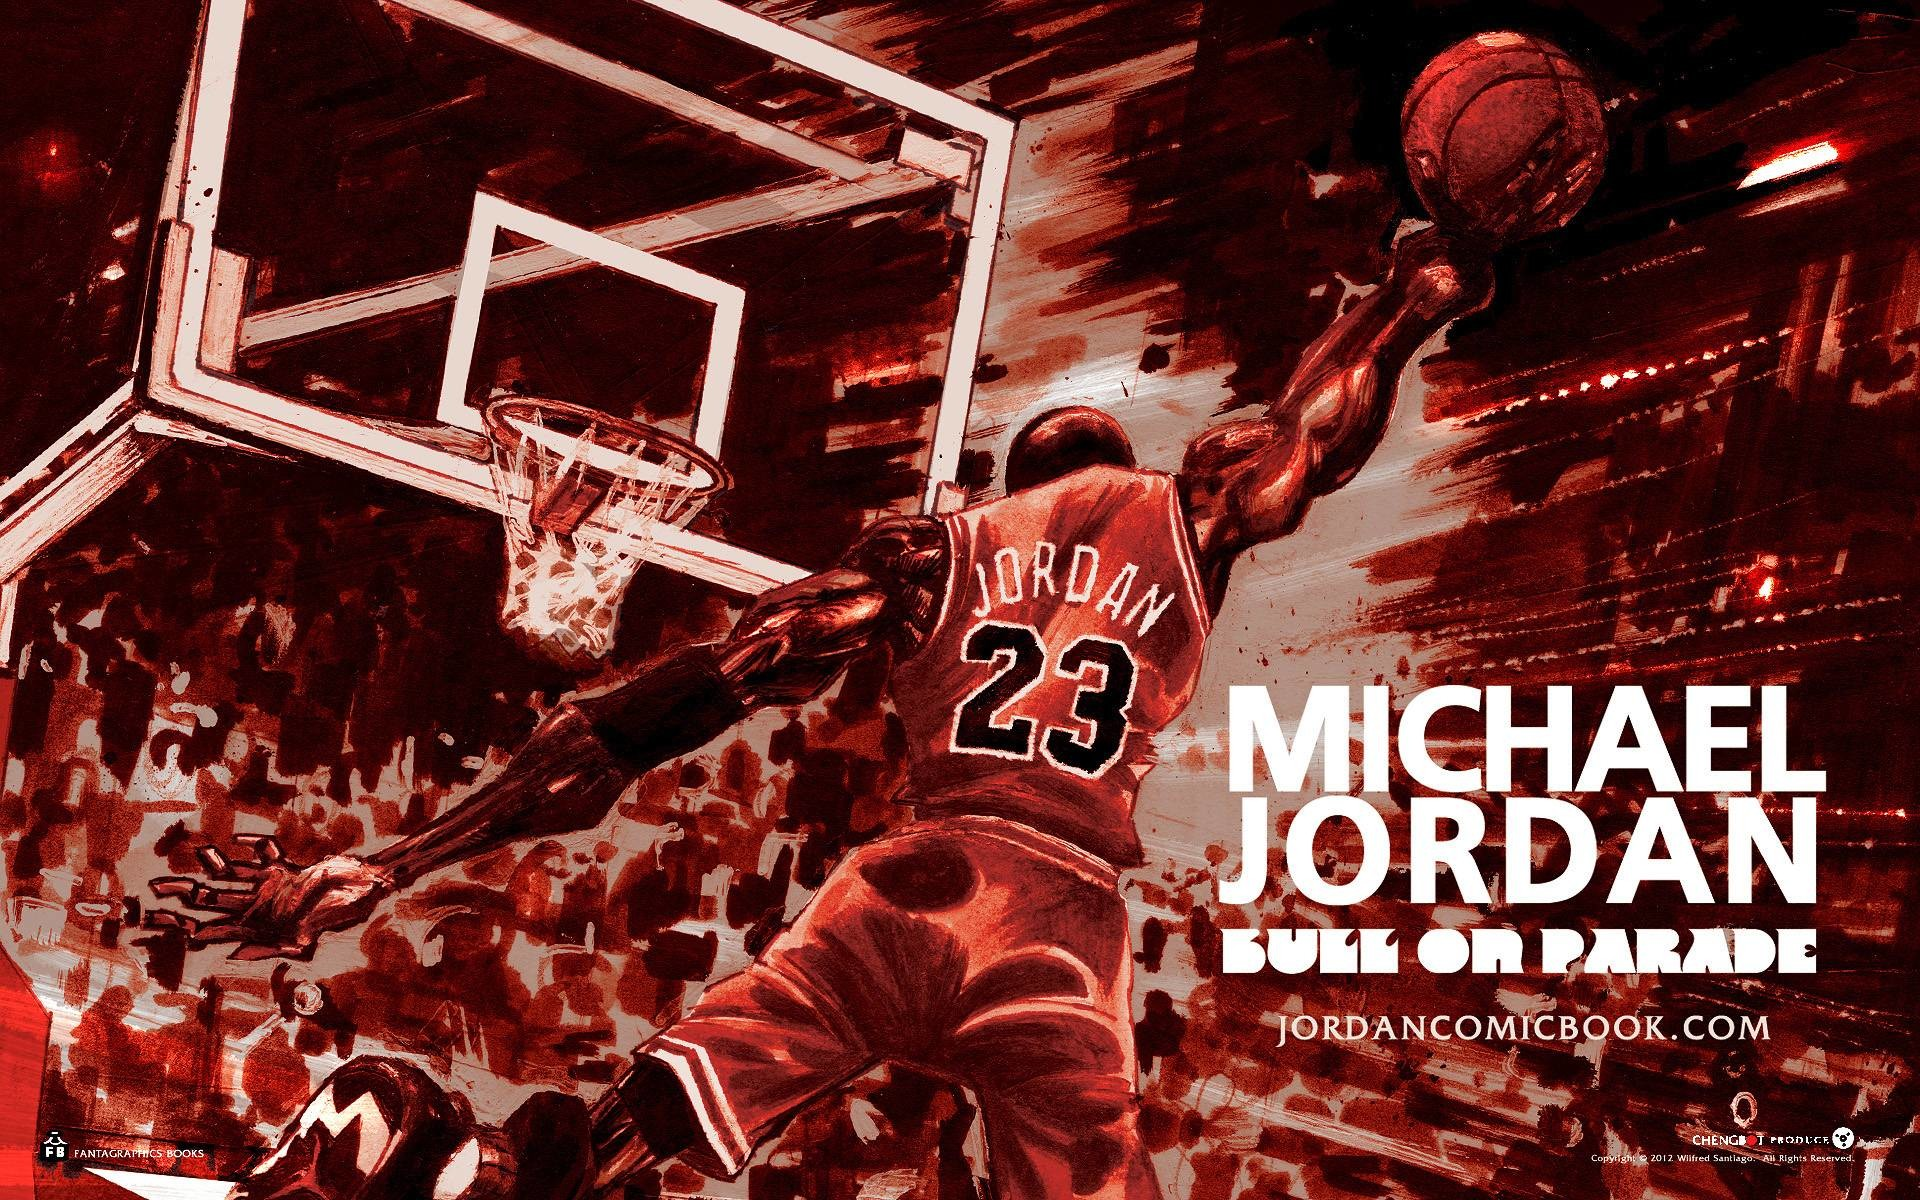 1920x1200 Michael-Jordan-Iphone-TELGRAPHIC-swag-1920×-Michael-Jordan-Wallpape- wallpaper-wp3807927